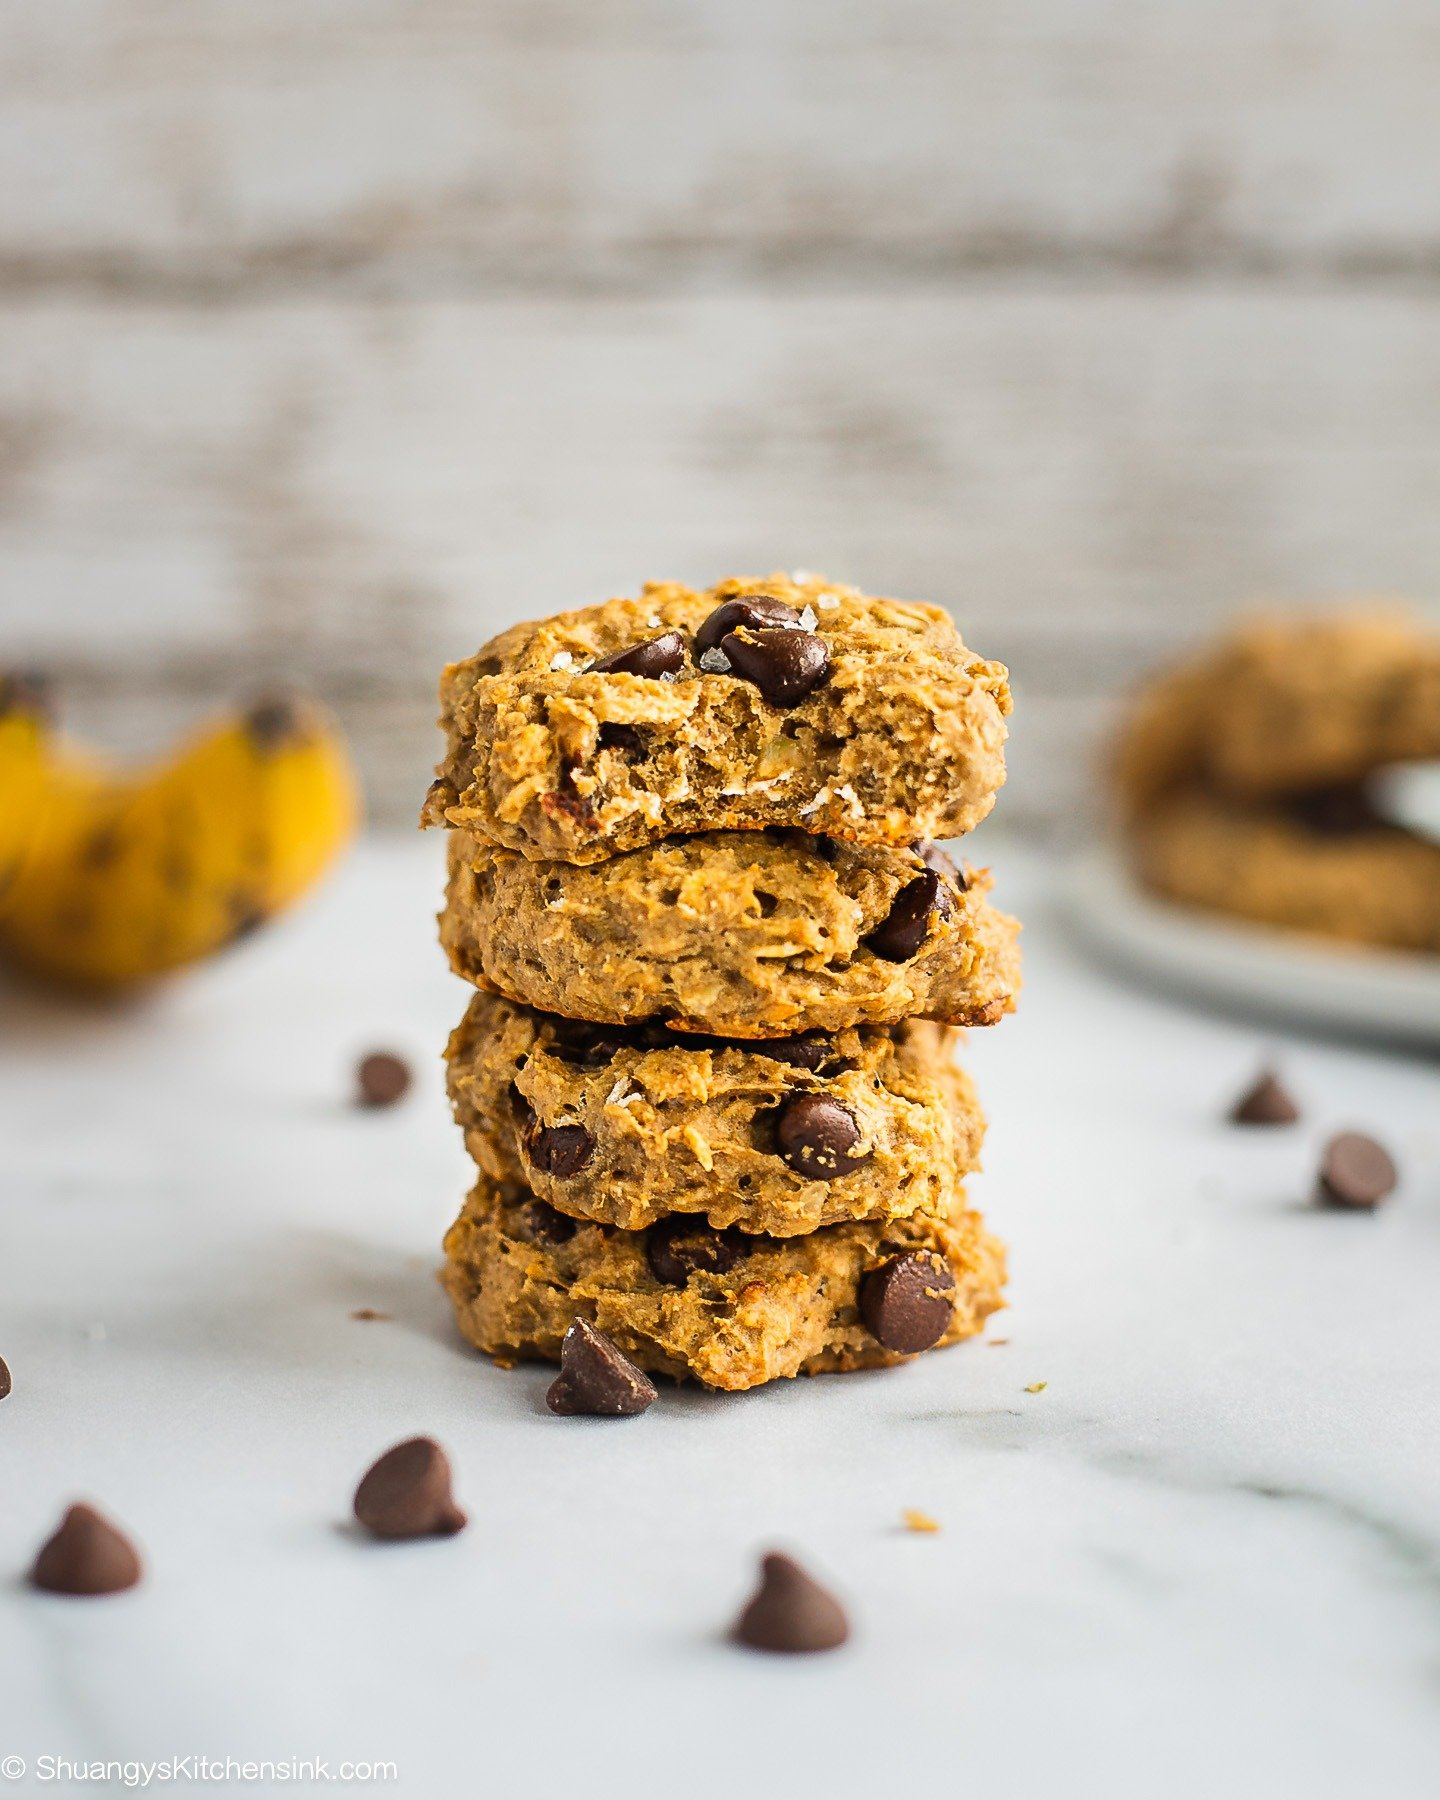 A stack of peanut butter banana oatmeal cookies. There are some chocolate chips on the table.